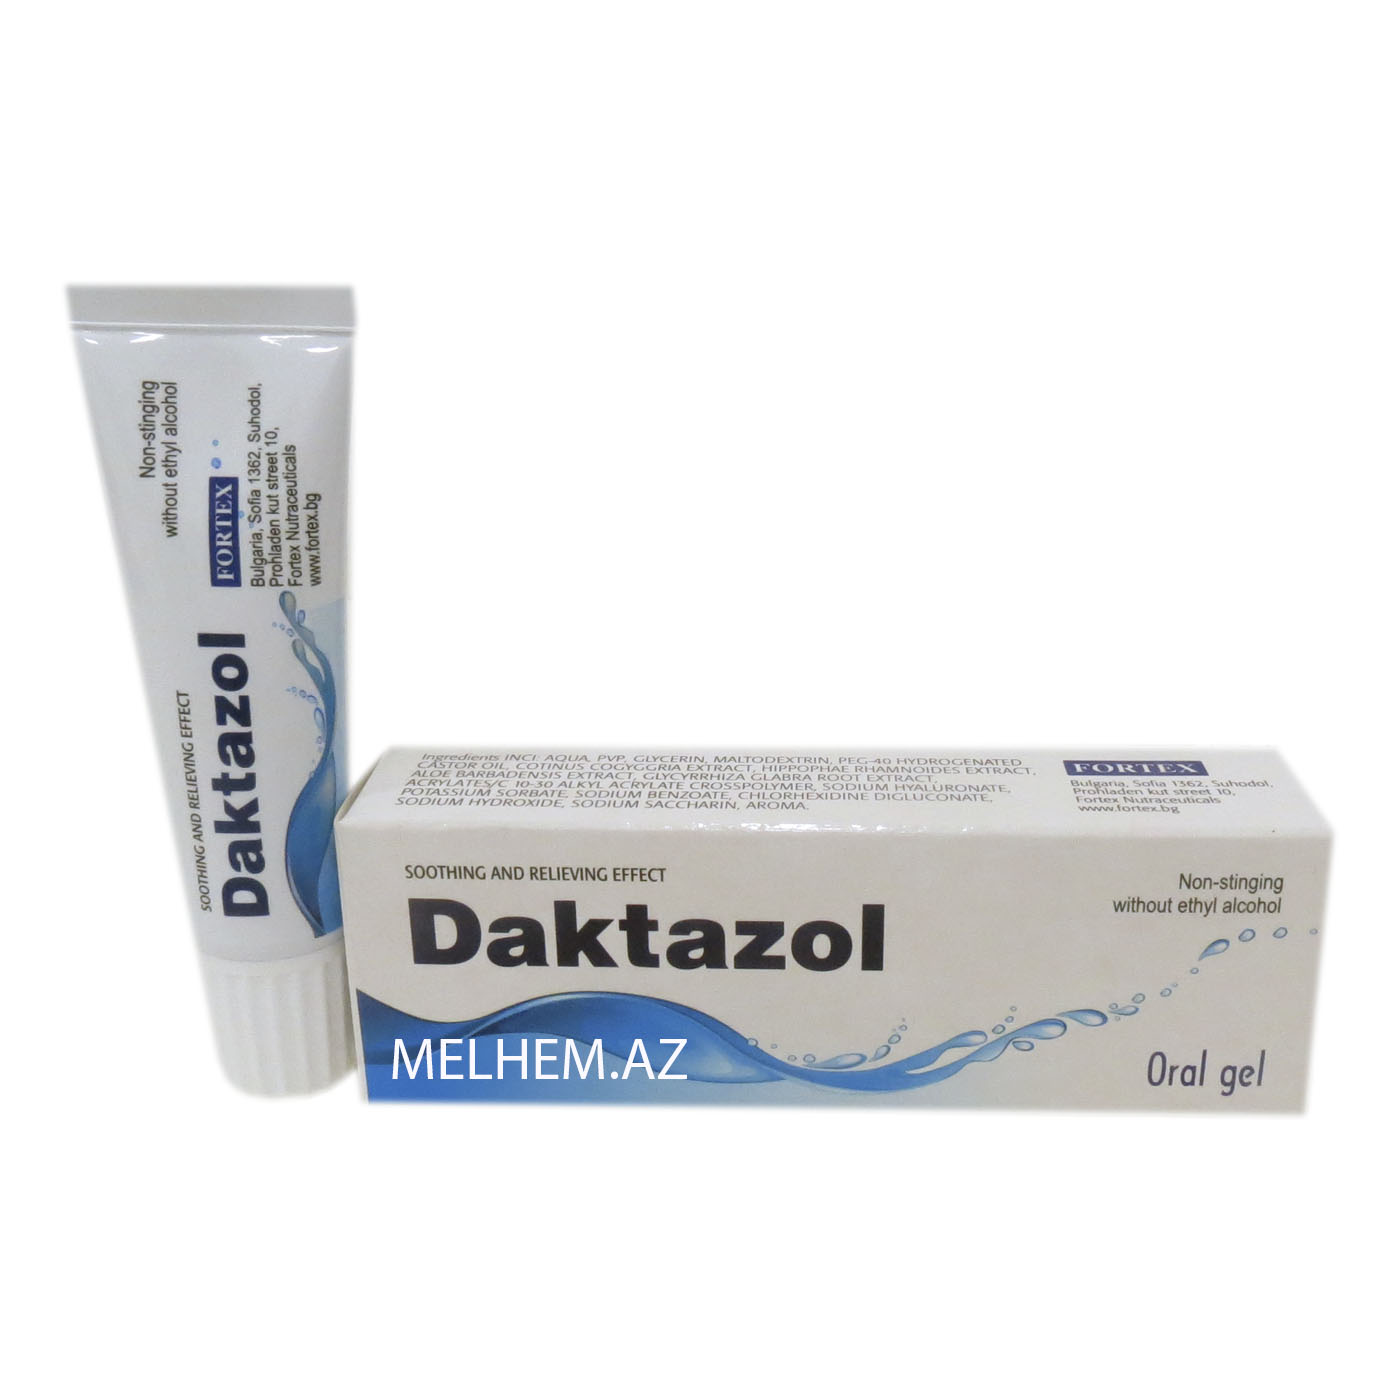 DAKTAZOL ORAL GEL